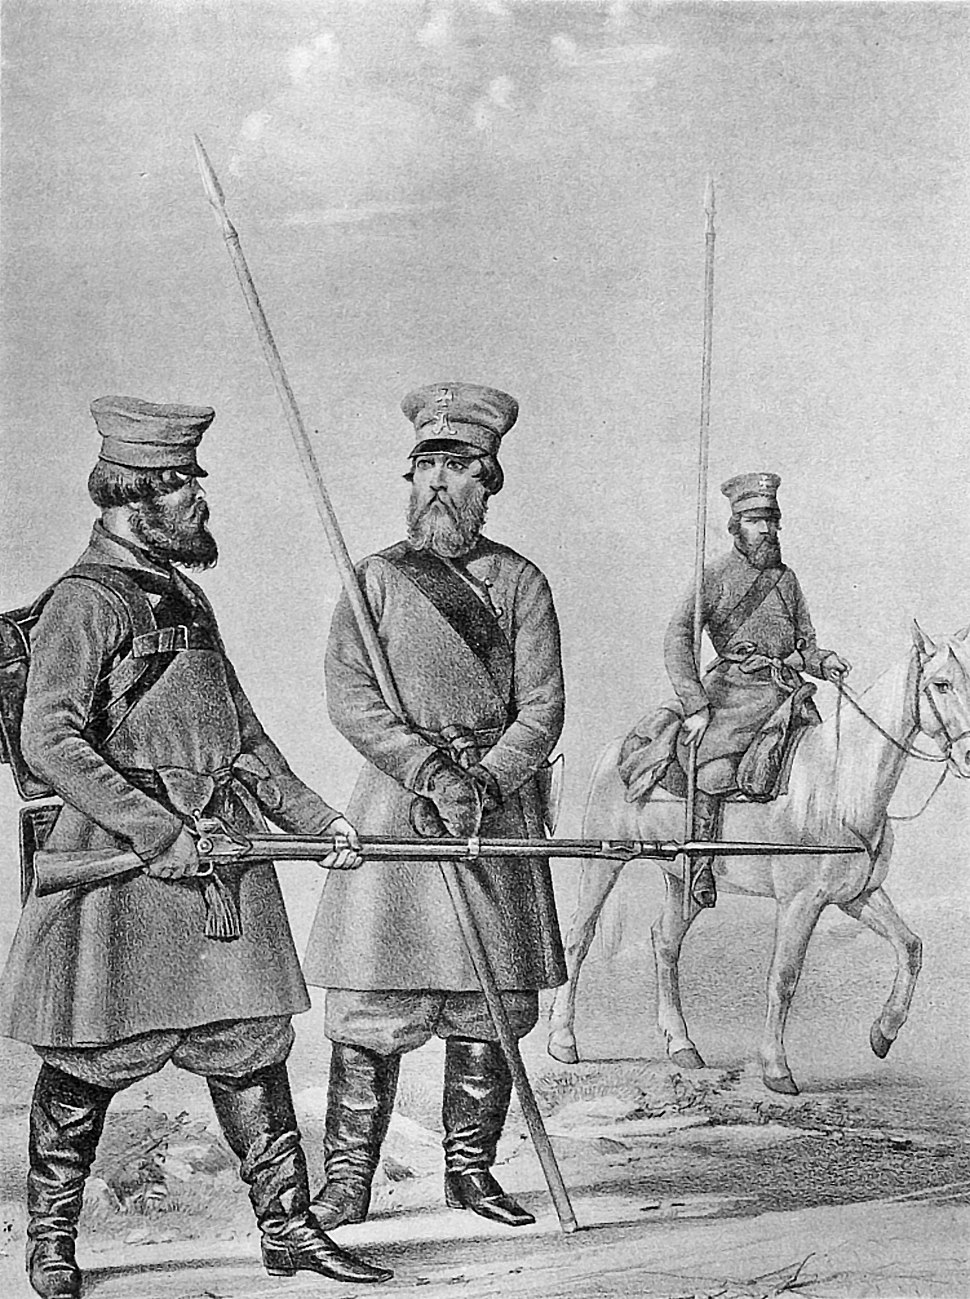 18 2531 Book illustrations of Historical description of the clothes and weapons of Russian troops